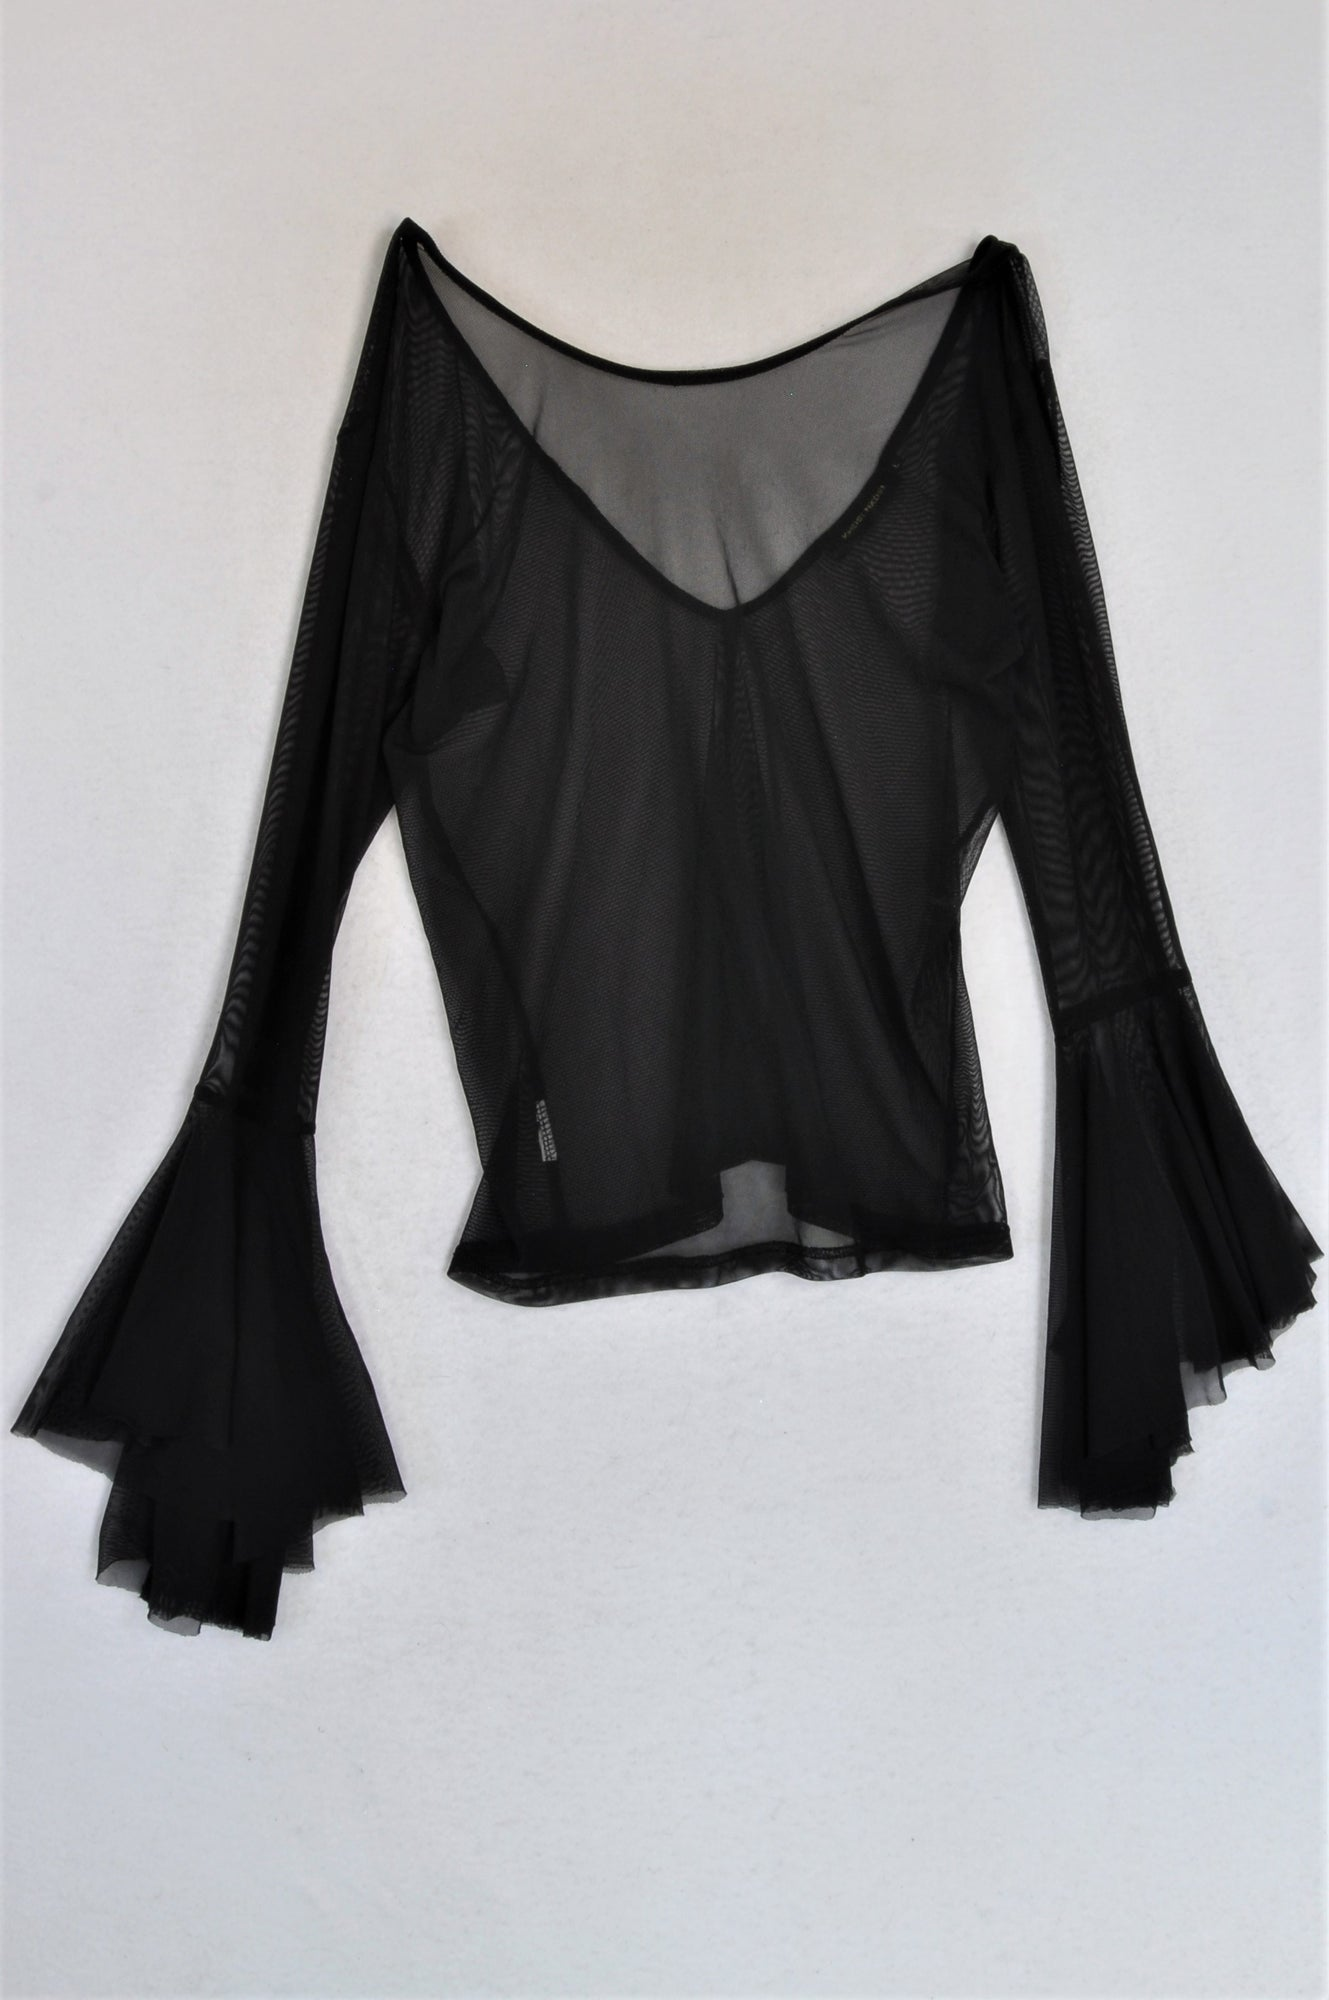 Khosi Nkosi Black Mesh Bell Sleeve Top Women Size M